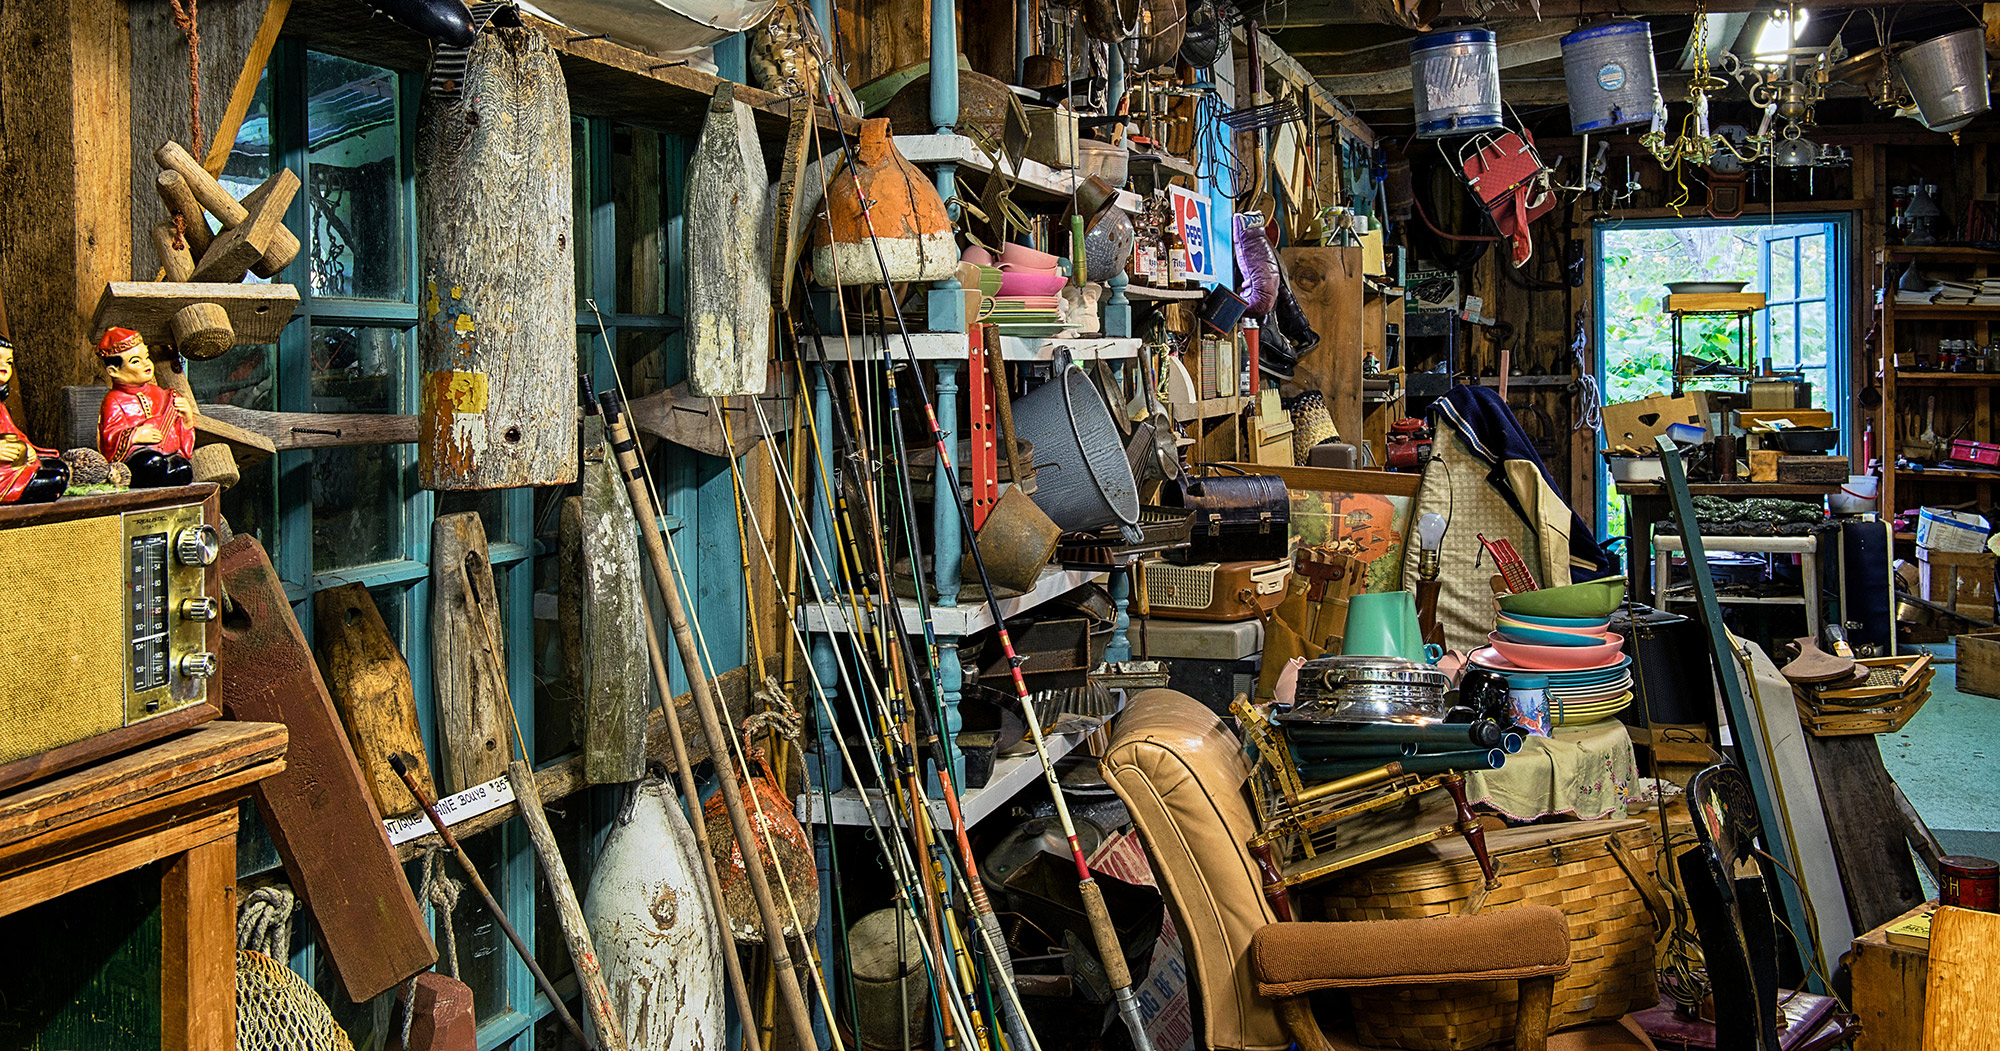 A cluttered room, filled wall to wall with junk